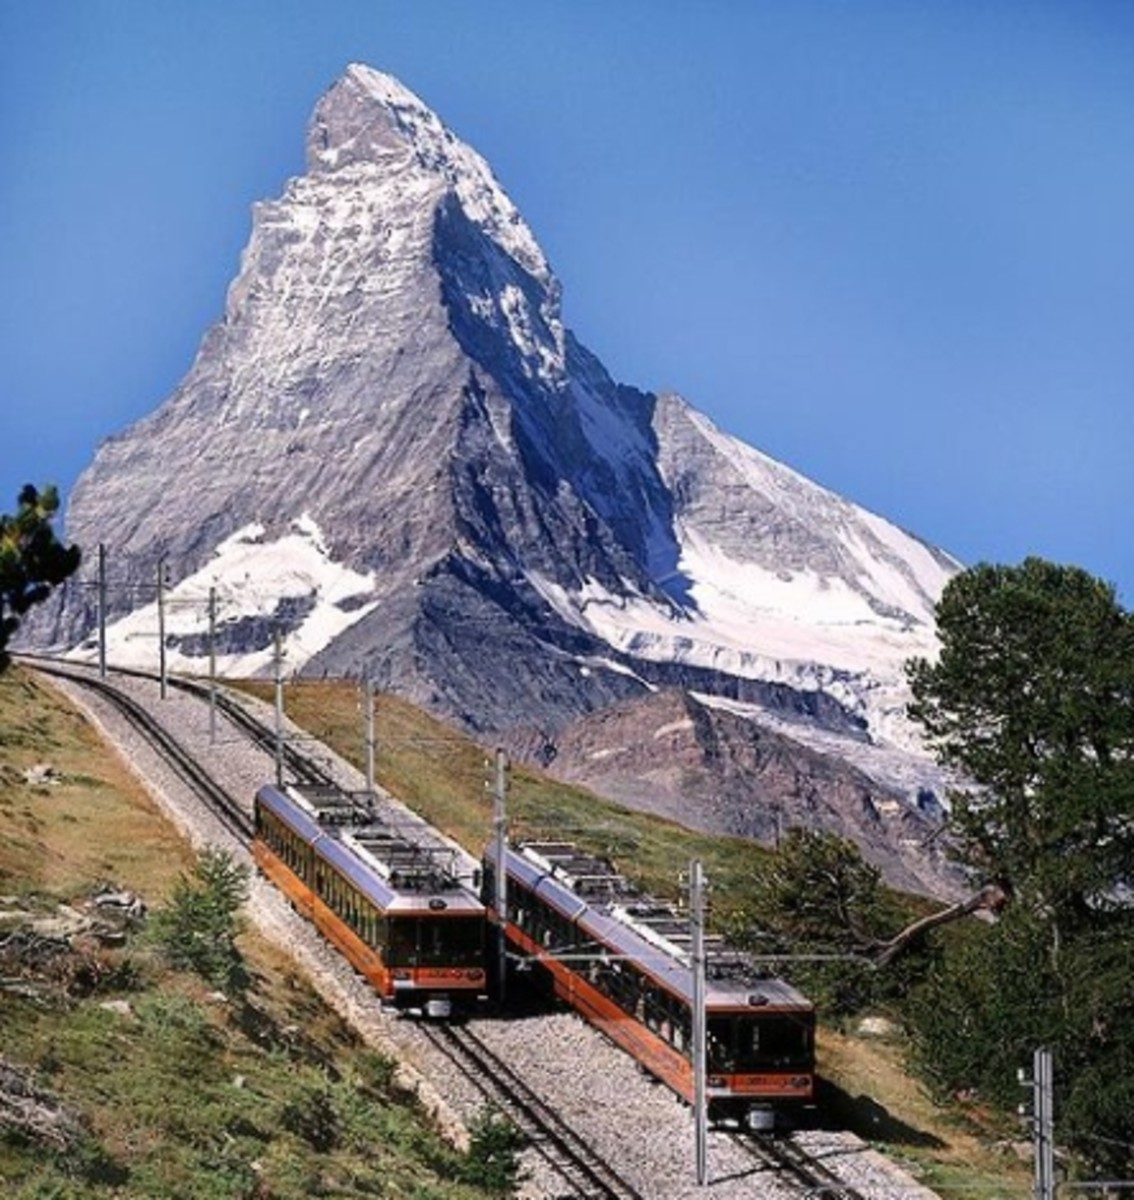 The Gornergrat cog railway and the Matterhorn today